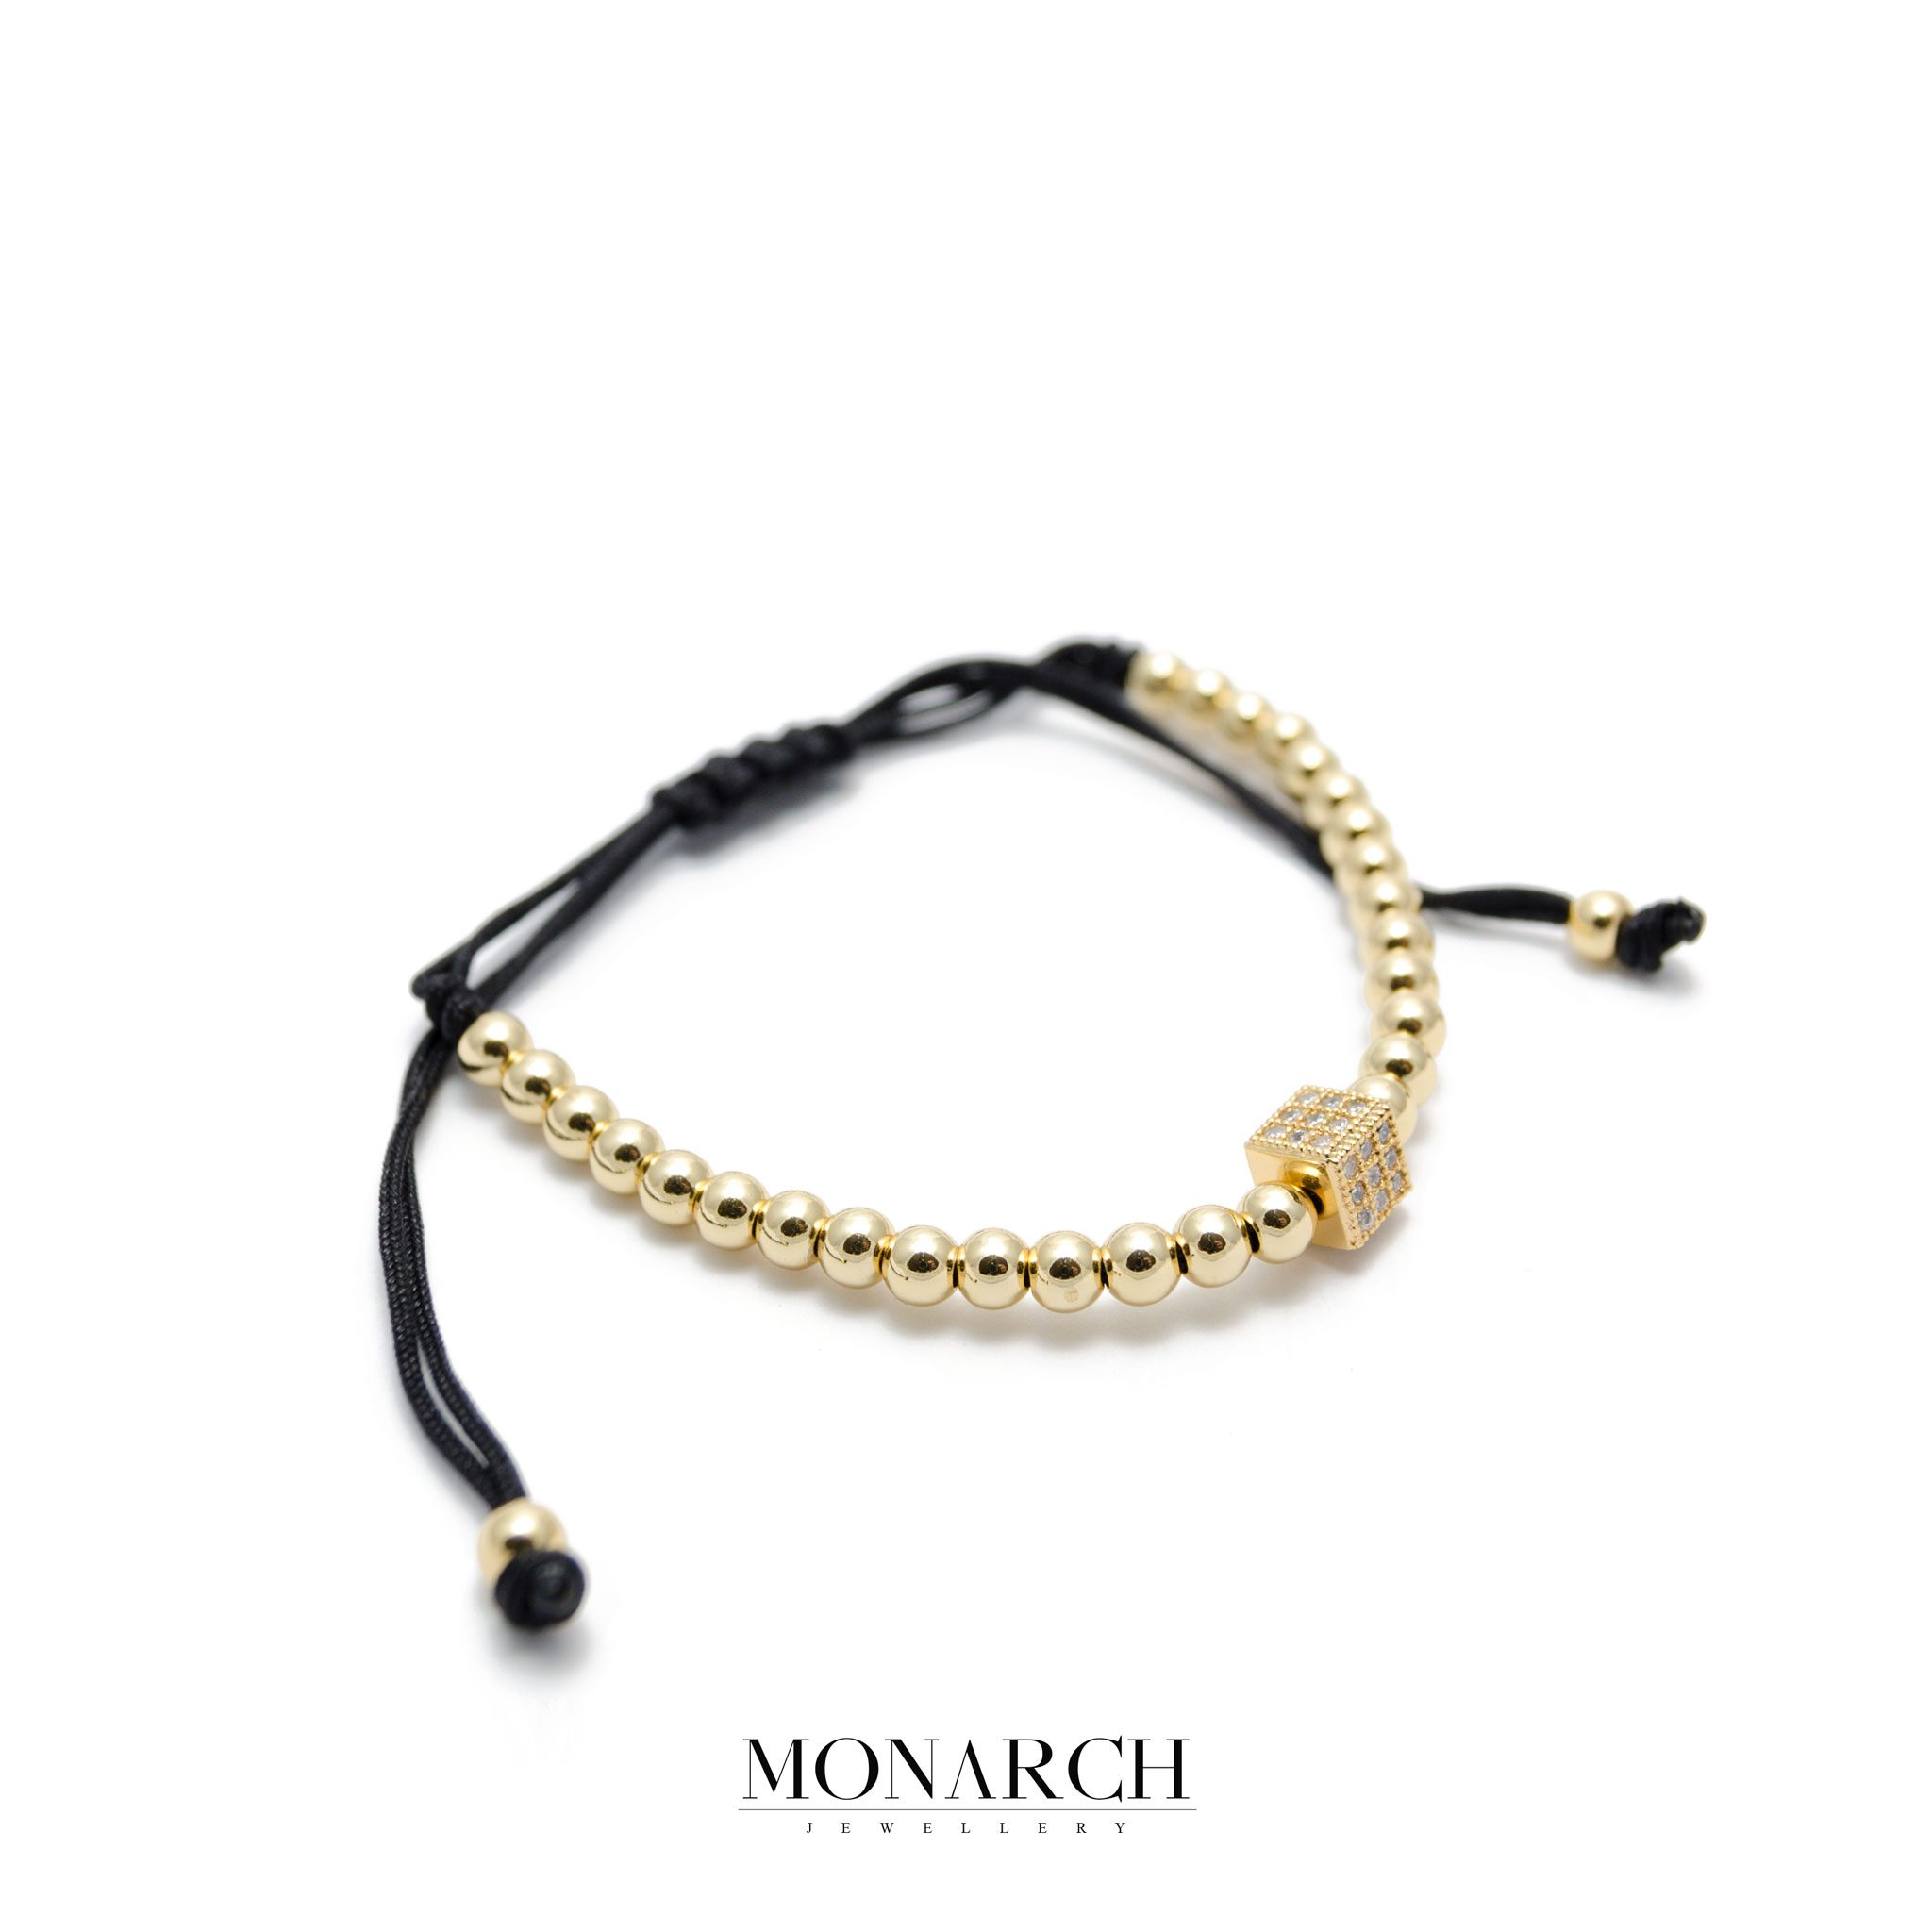 Monarch Jewellery 24K Gold Cube Luxury Macrame Bracelet